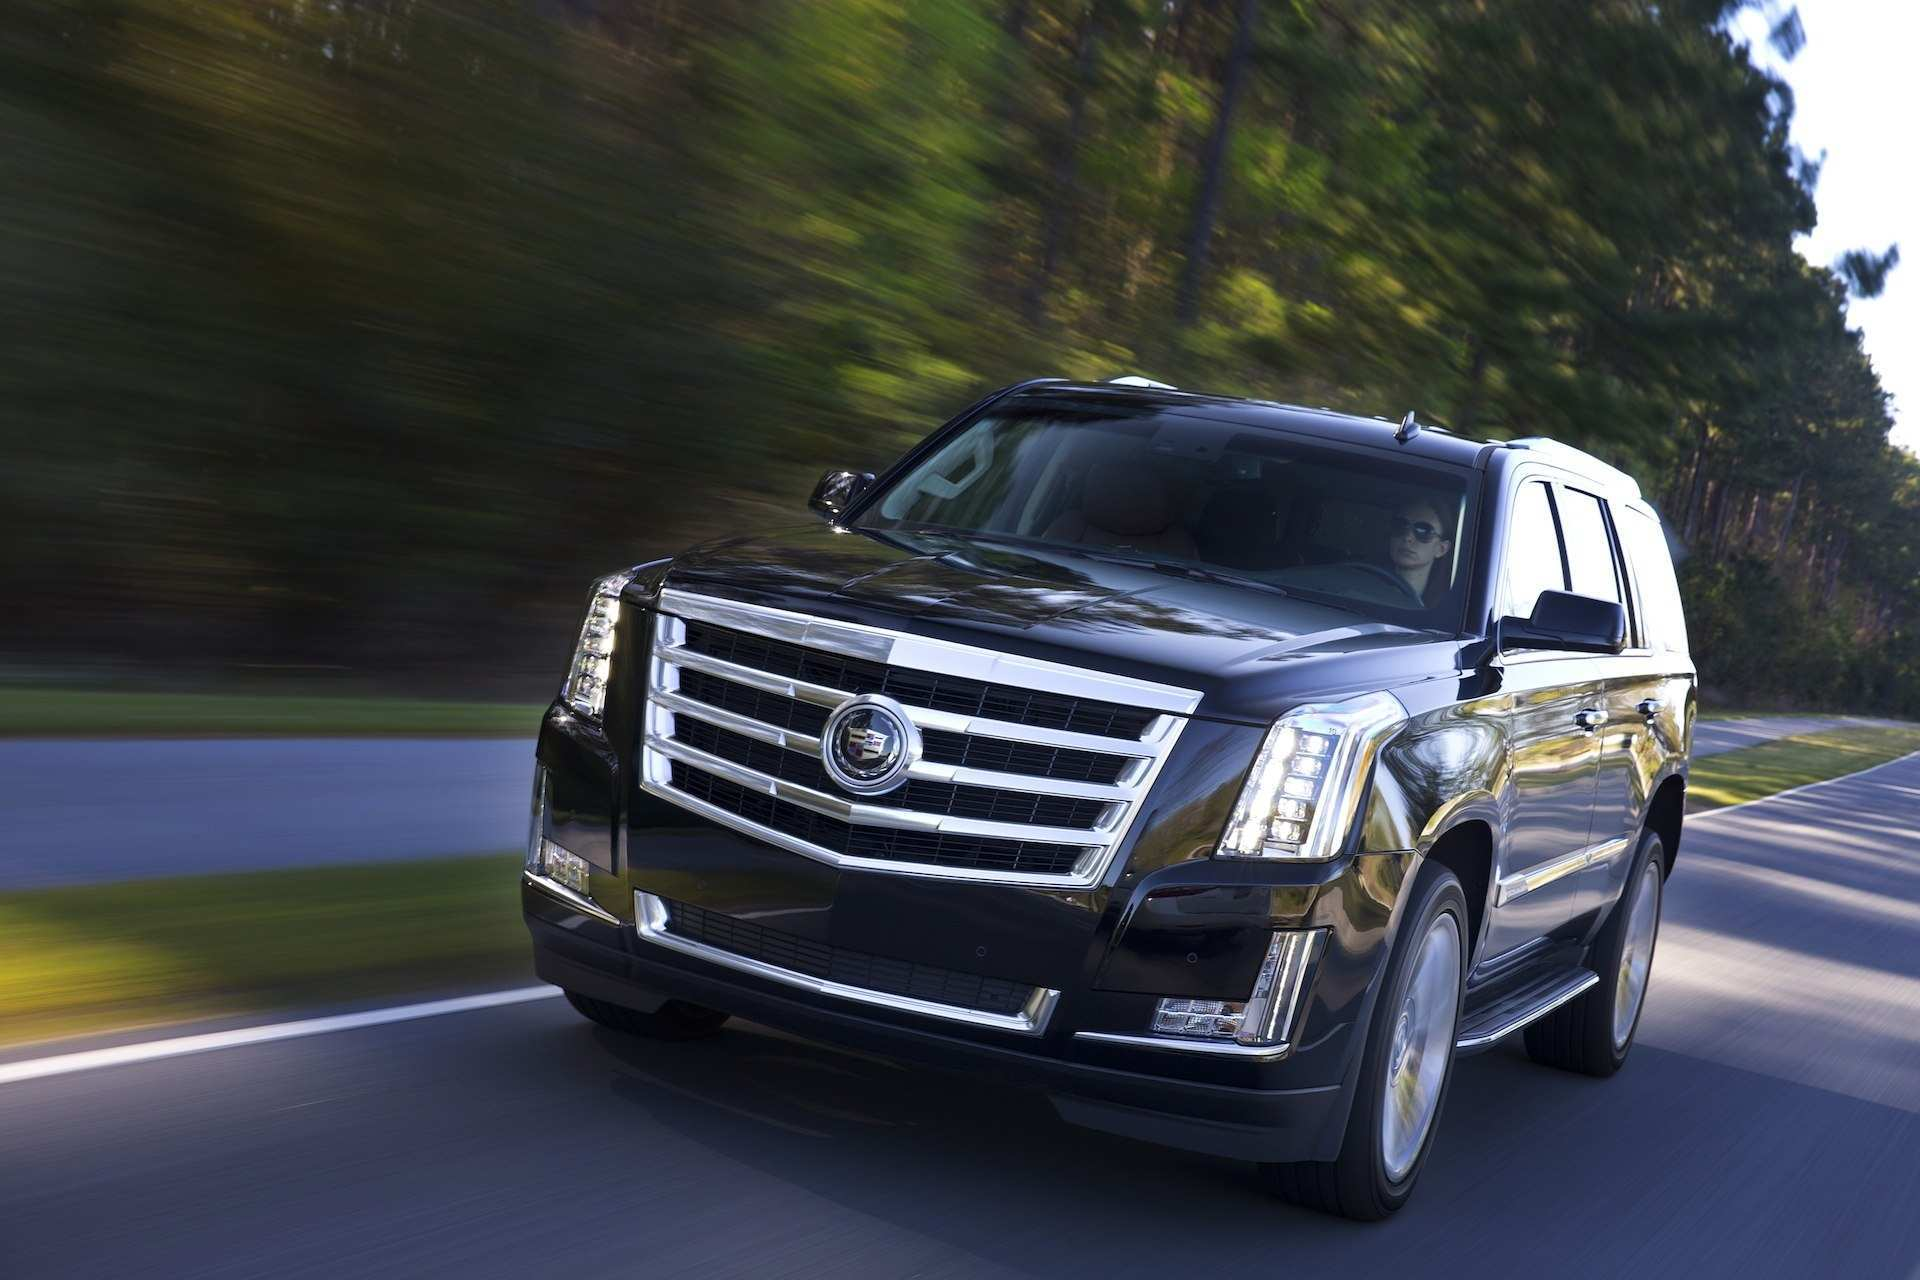 98 Best 2020 Cadillac Escalade V Ext Esv Price